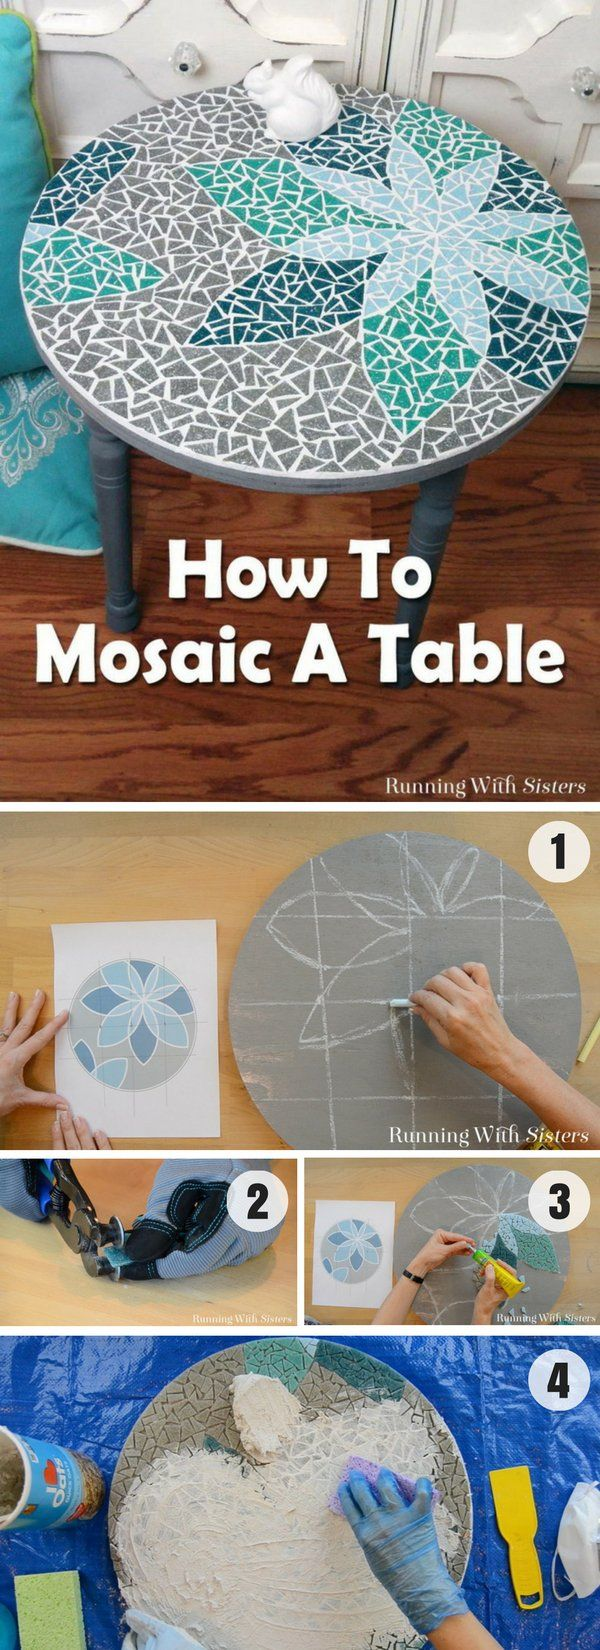 Best 20 Mosaic projects ideas on Pinterest Mosaic crafts